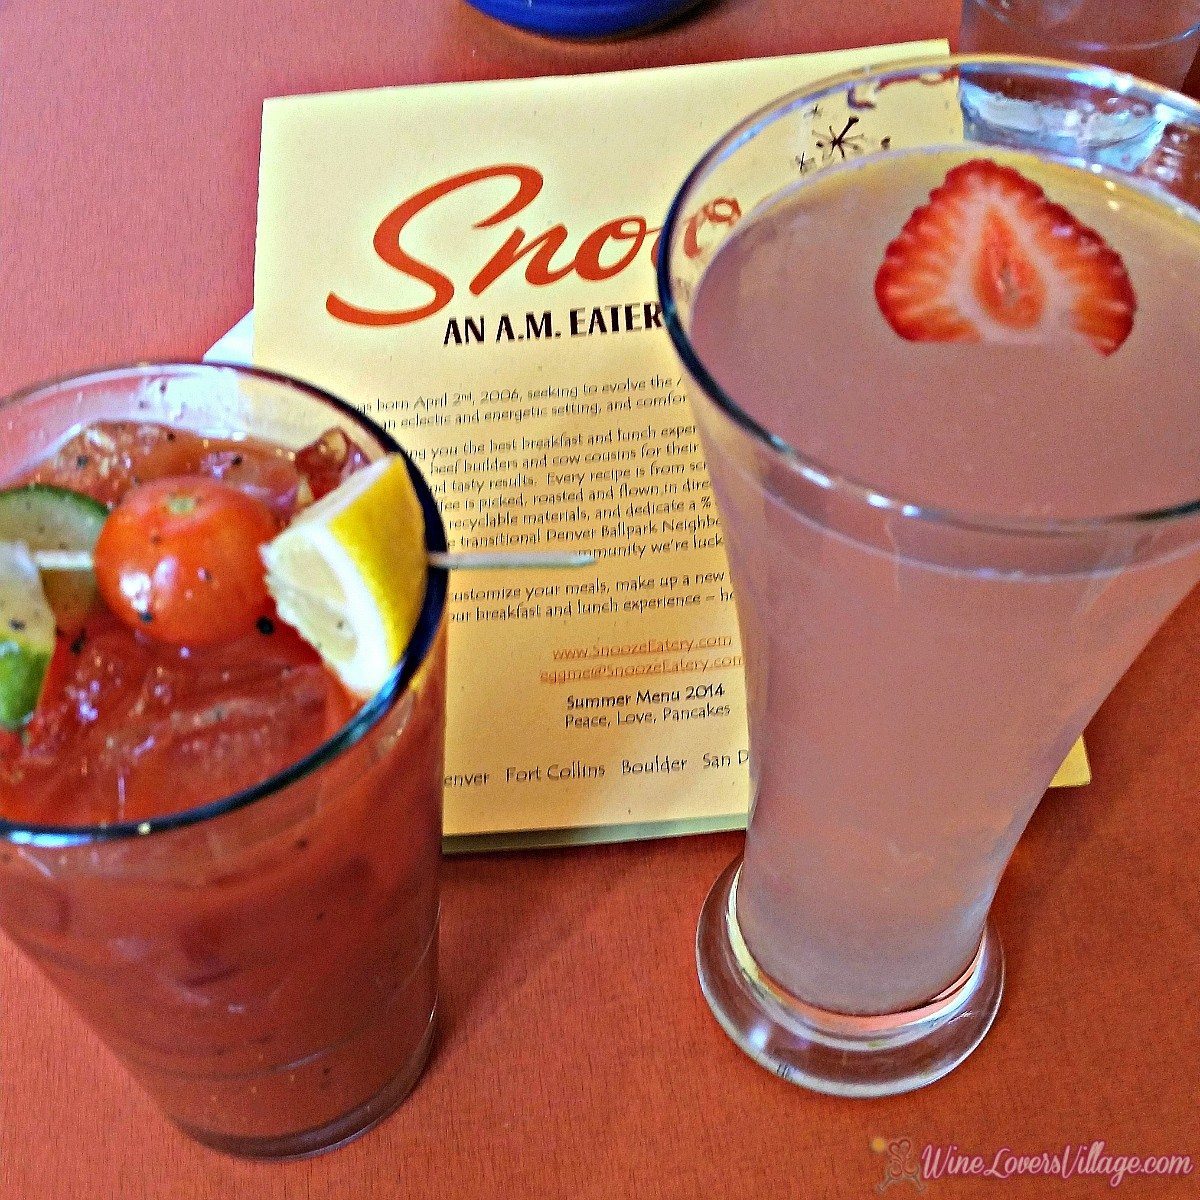 Denver tops the list for America's best cities for brunch, and these brunch cocktails at Snooze in Union Station Denver are worth the stop.